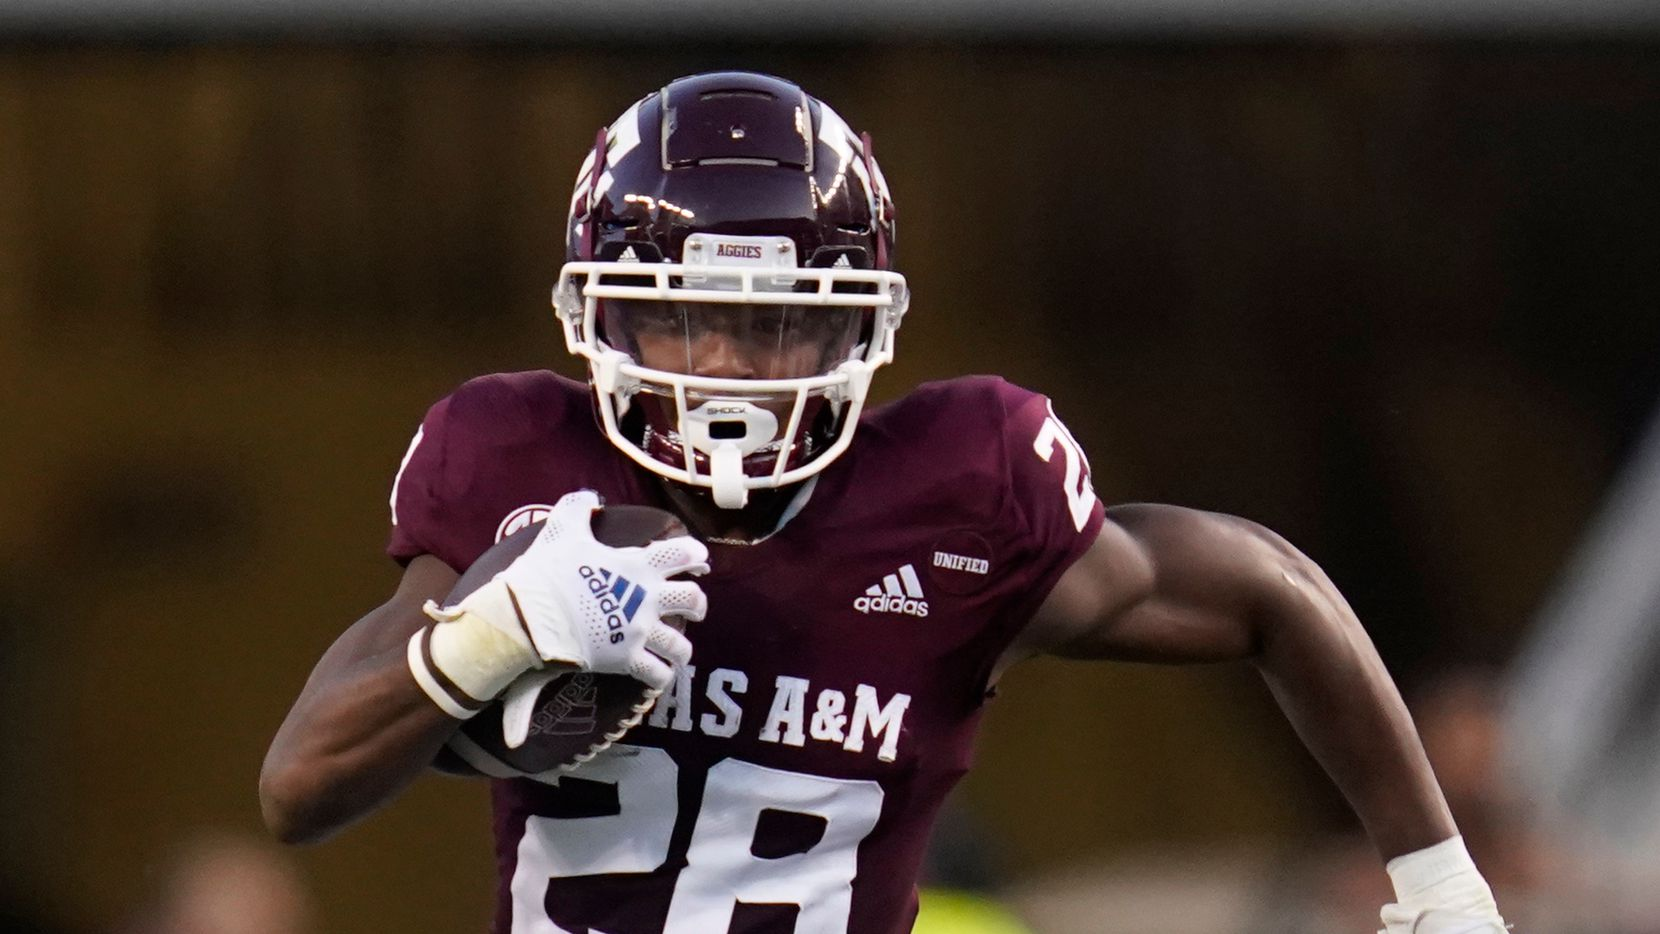 Texas A&M running back Isaiah Spiller (28) breaks to the outside against Kent State for a first down run during the first quarter of an NCAA college football game on Saturday, Sept. 4, 2021, in College Station, Texas.